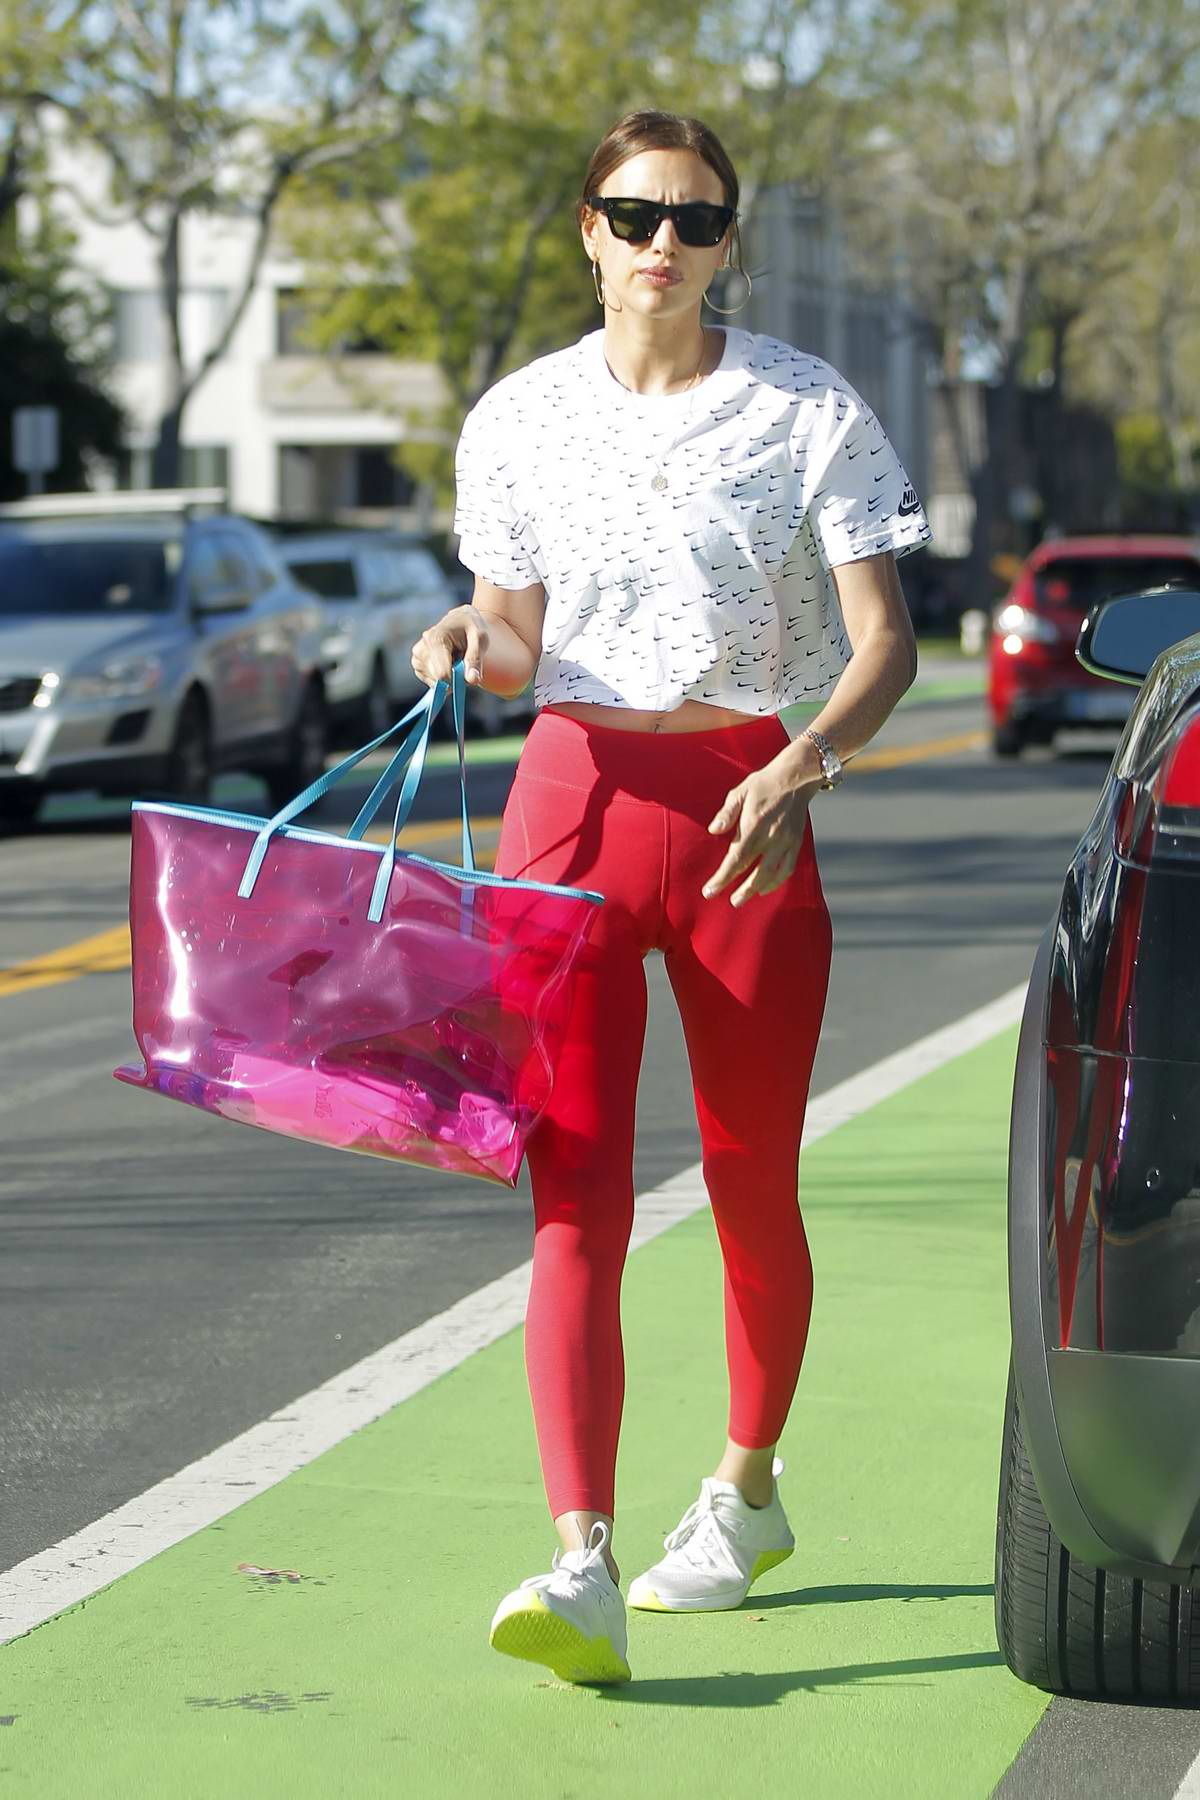 Irina Shayk rocks a Nike top and red leggings while visiting a massage parlor in Brentwood, Los Angeles